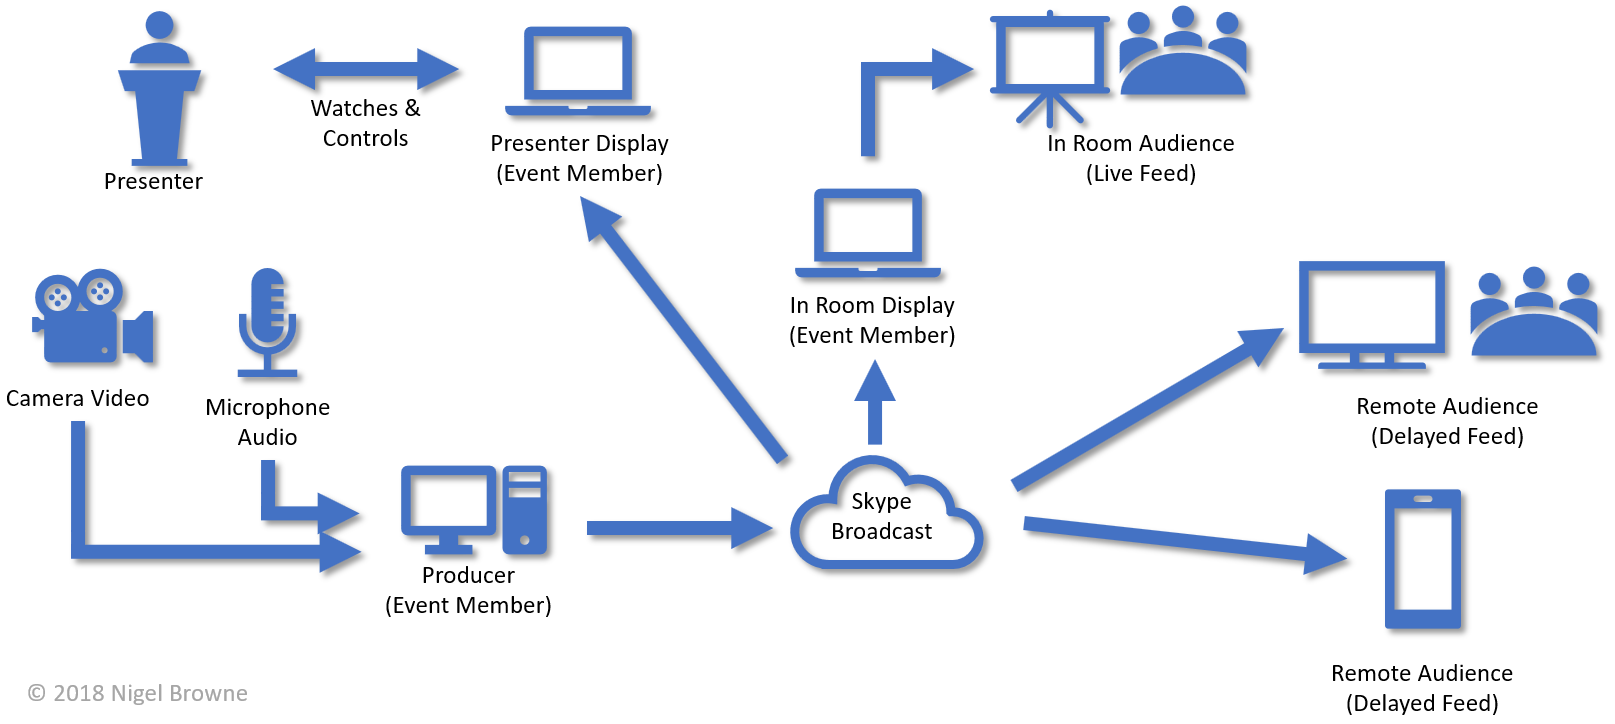 Setup for Skype Broadcast with an in-room audience